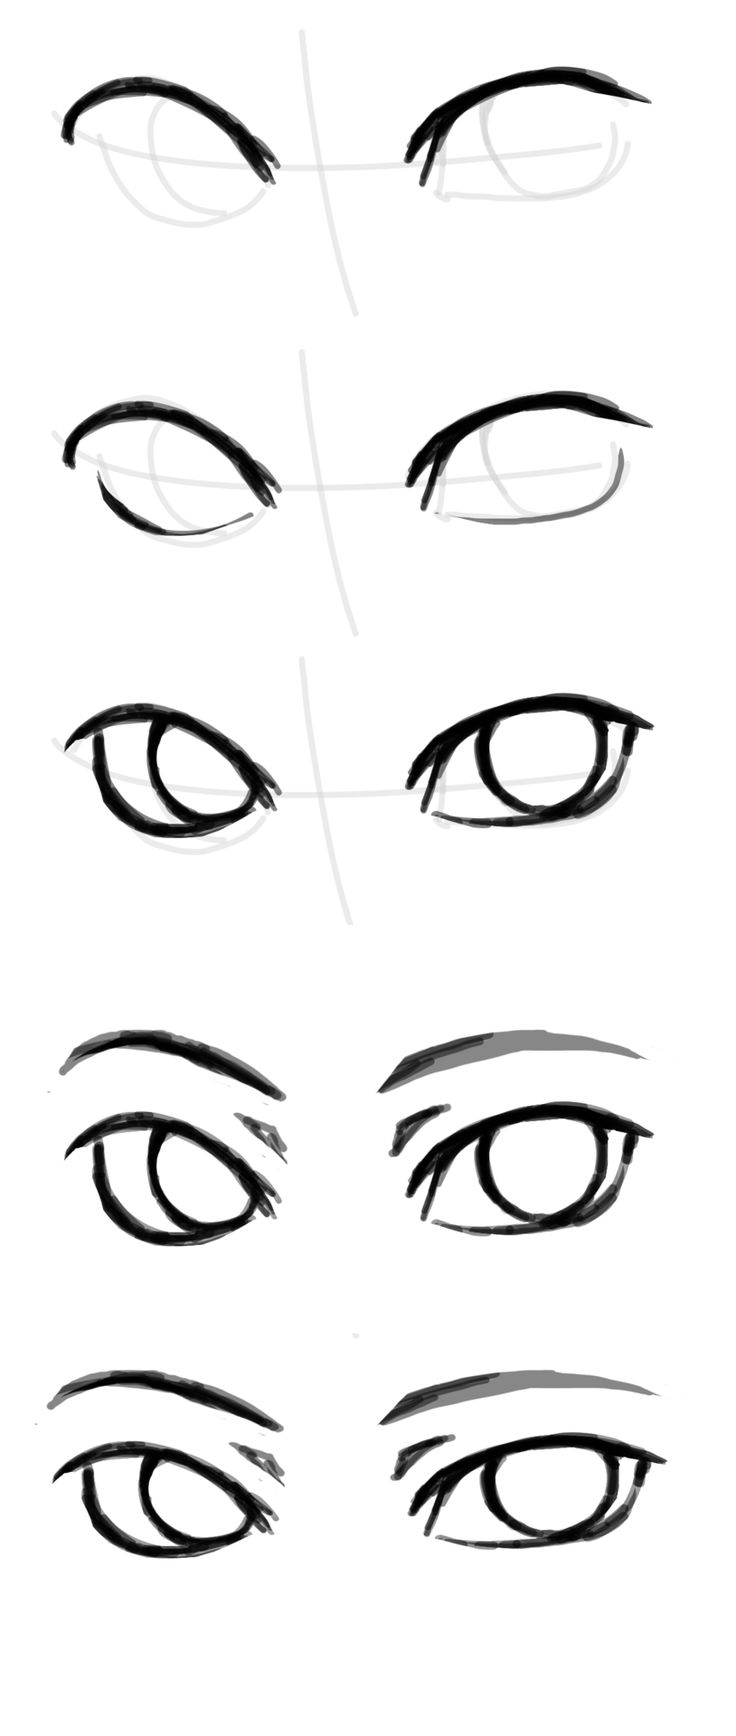 Sirblizzard: How To Draw 'the Other Eye' Because People Keepplaining